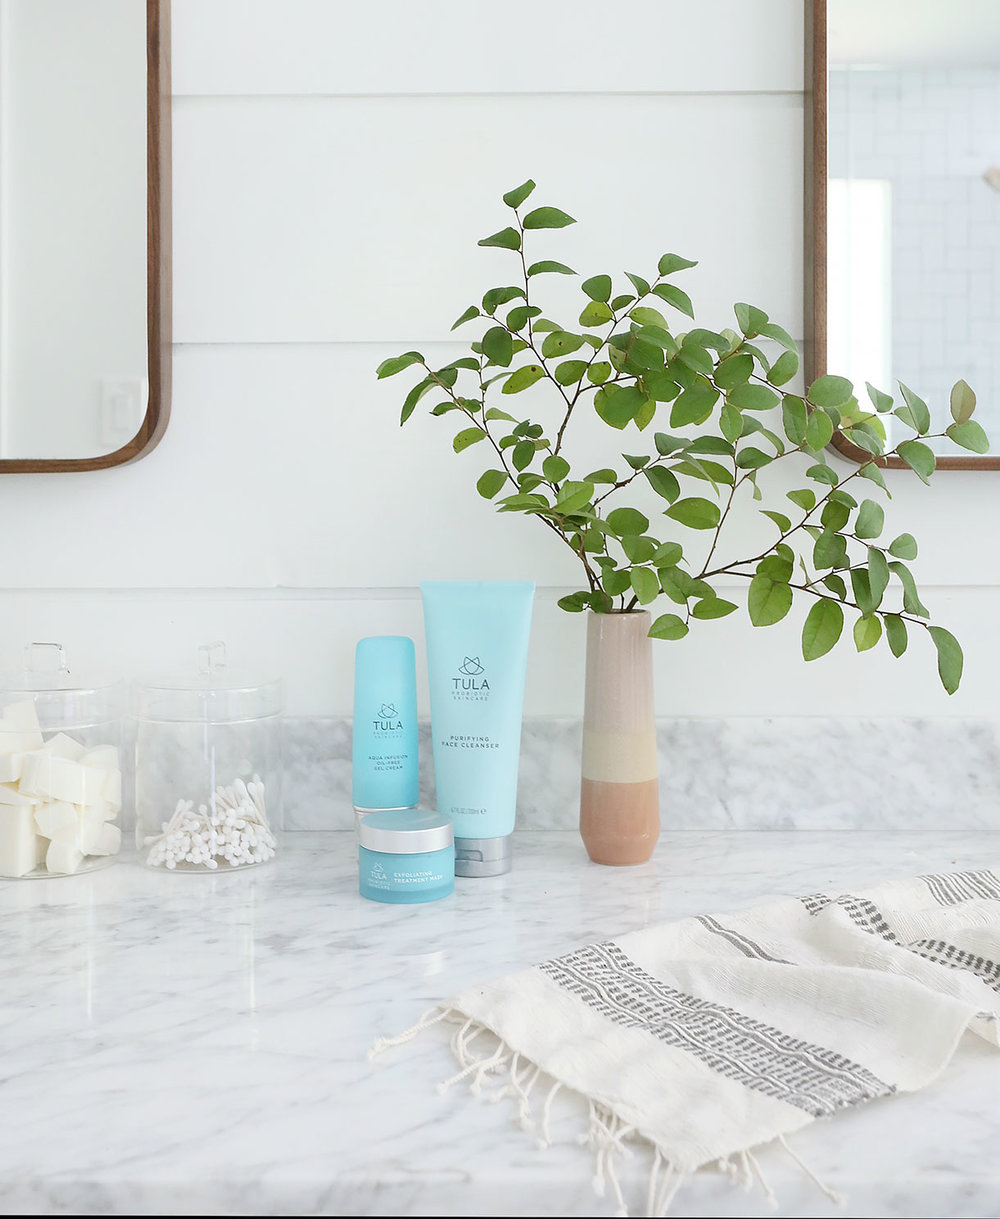 Glass Containers   |   Tula Purifying Cleanser   |   Tula Aqua Gel Cream   |   Tula Exfoliating Mask   |   Vase   |   Mirrors   |   Hand Towel